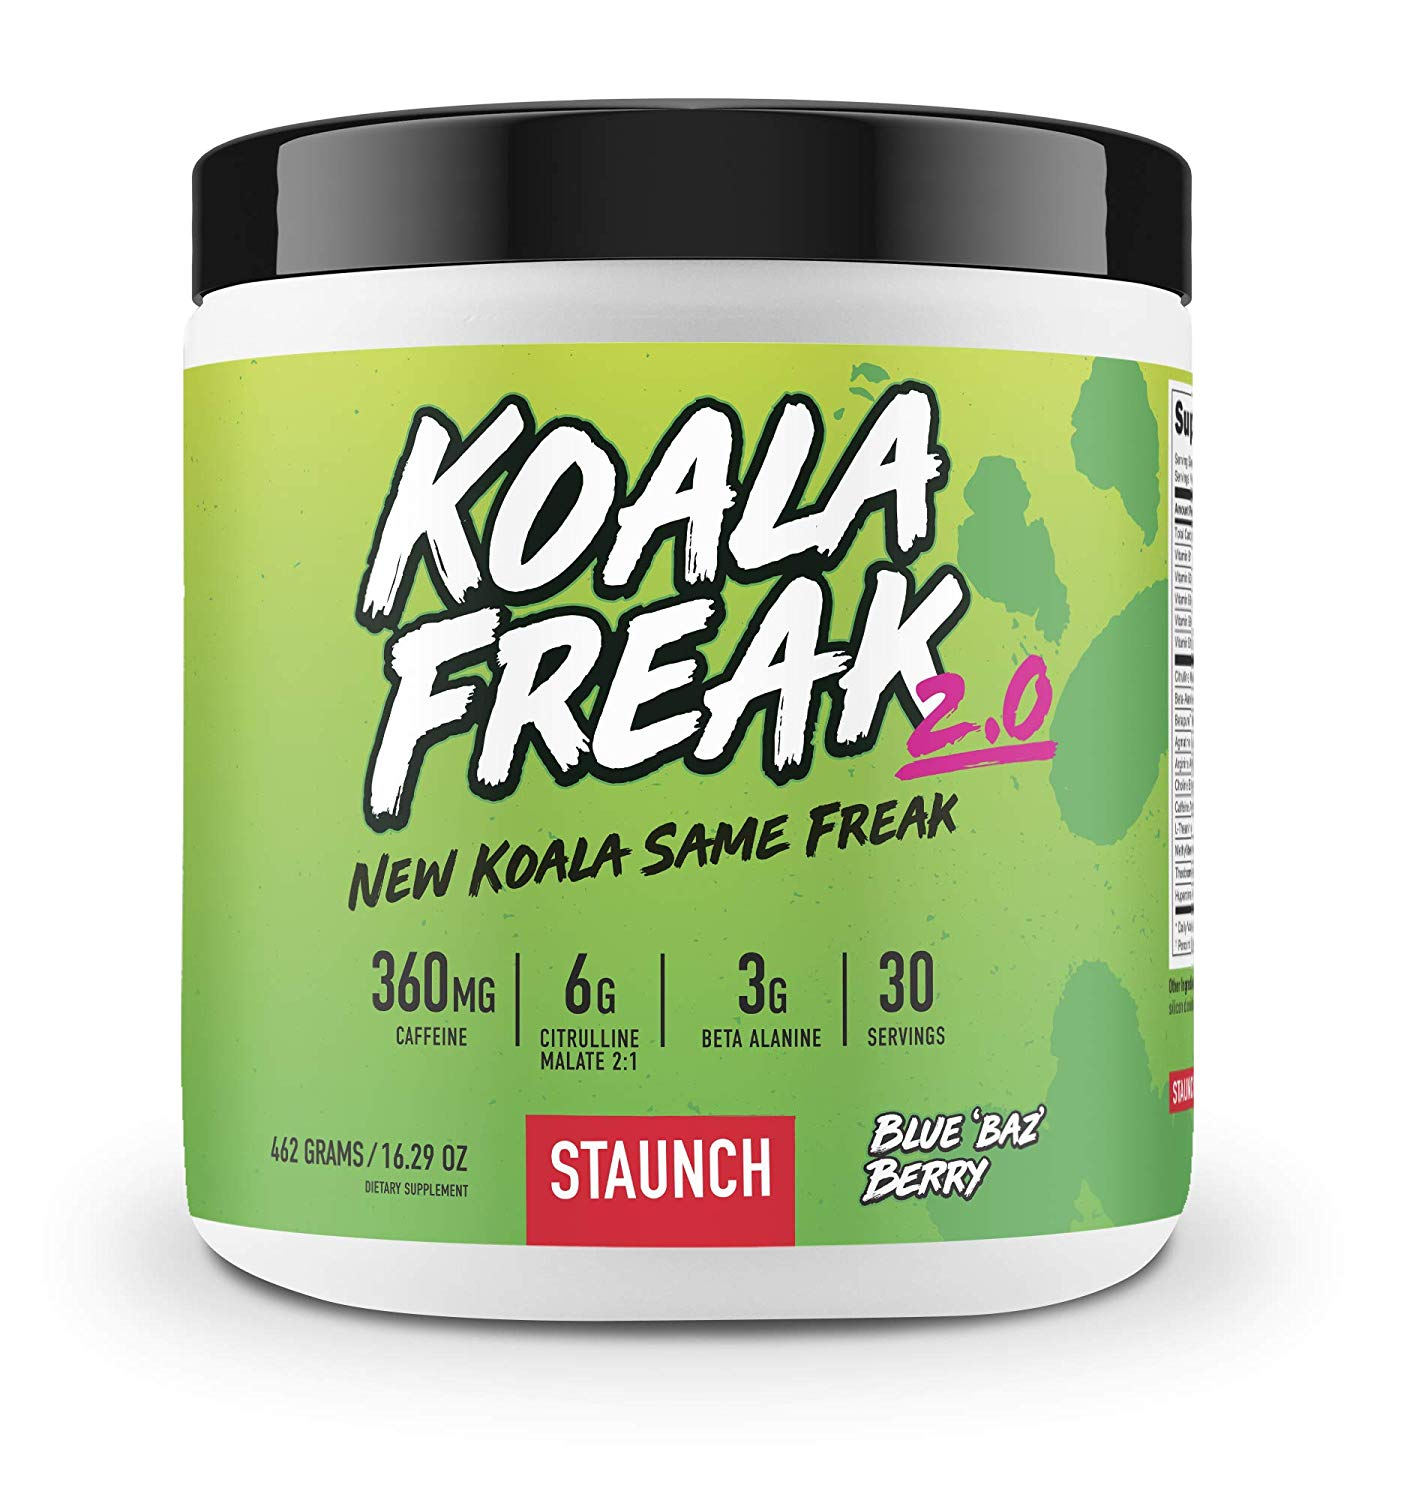 koala freak pre-workout